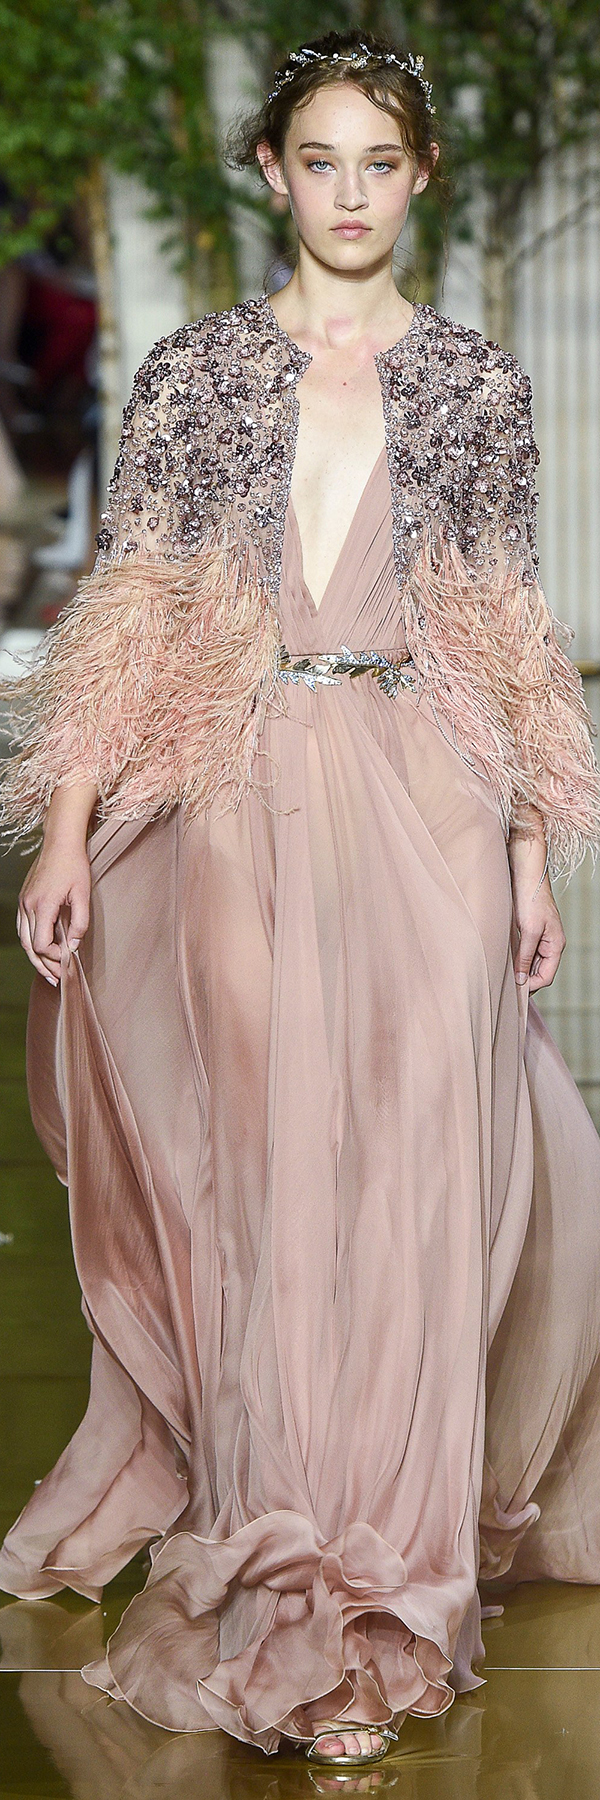 Zuhair murad fall winter haute couture collection pasarela